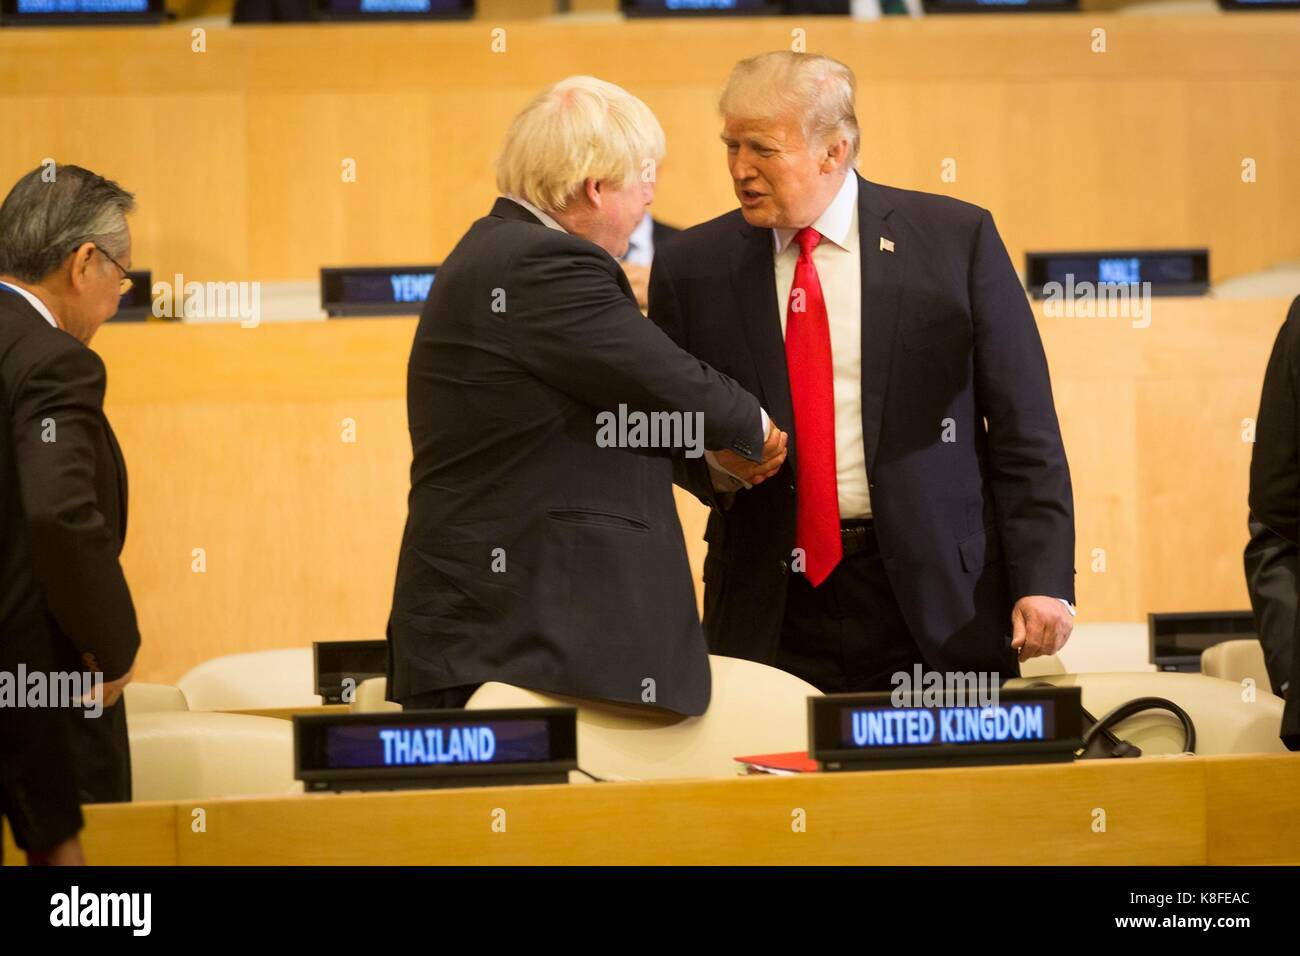 U.S. President Donald Trump, right, shakes hands with British Secretary of State for Foreign and Commonwealth Affairs - Stock Image